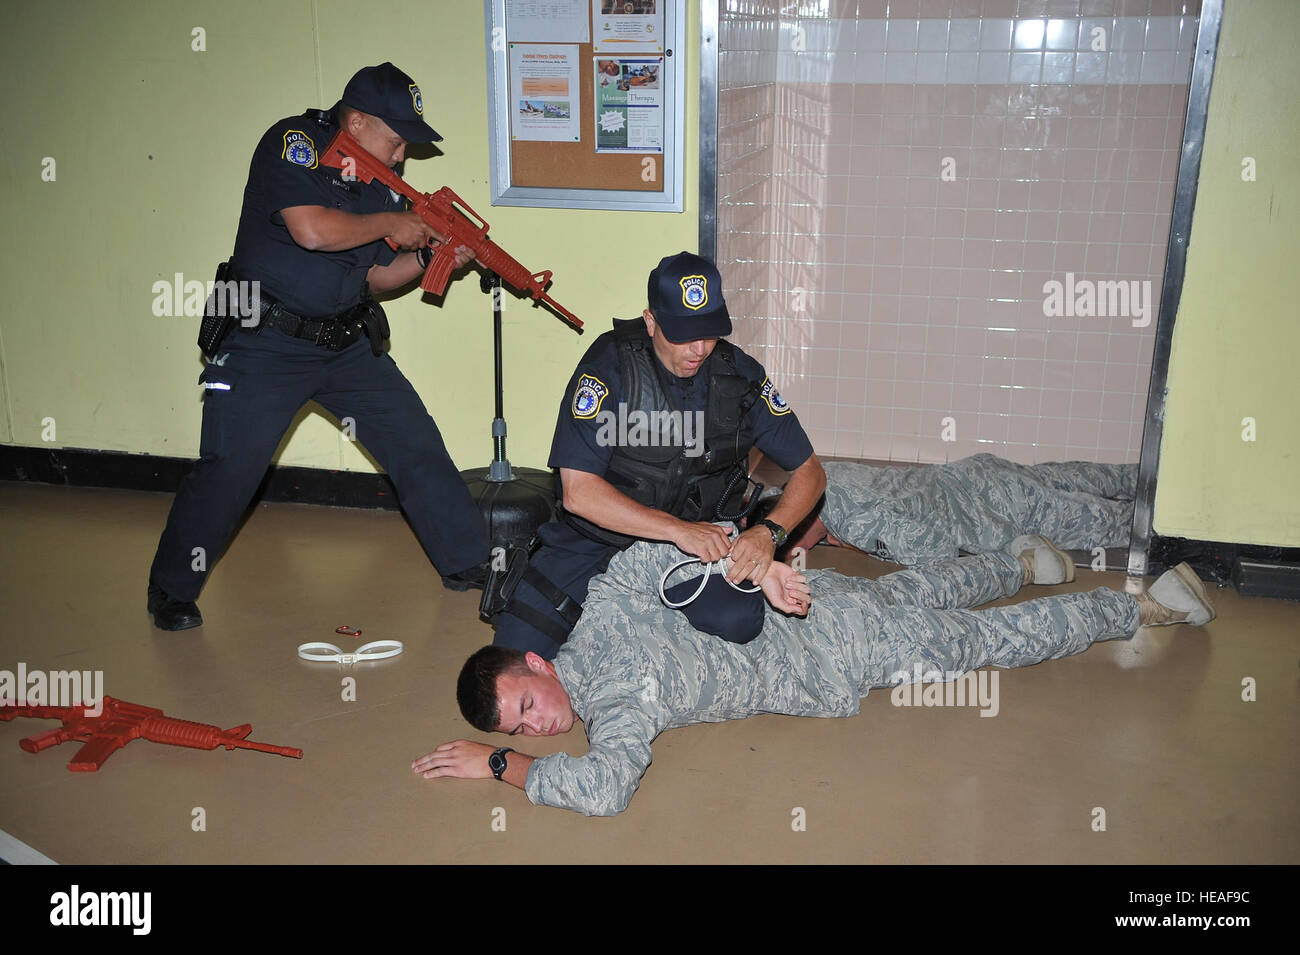 Members of the 87th Security Forces Squadron apprehend airmen posing as shooters during an active-shooter exercise - Stock Image